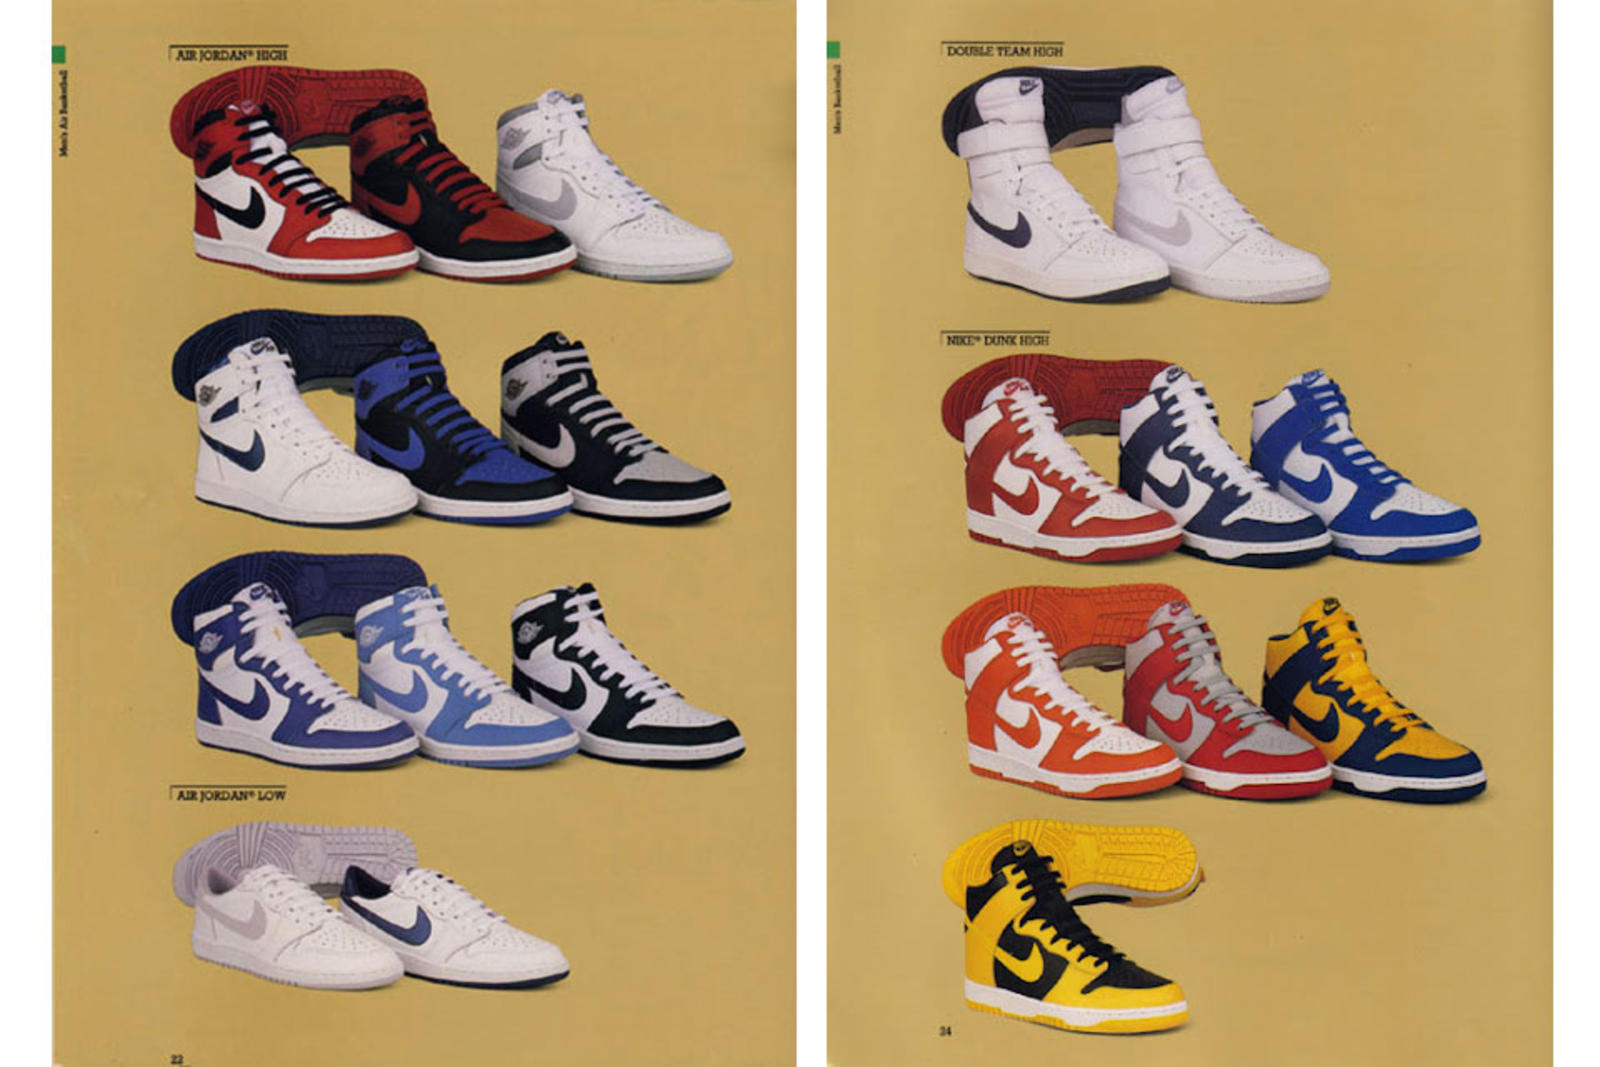 promo code 81445 fdd70 Inside Access  The Nike Dunk Celebrates 30 Years as an Icon - Nike News